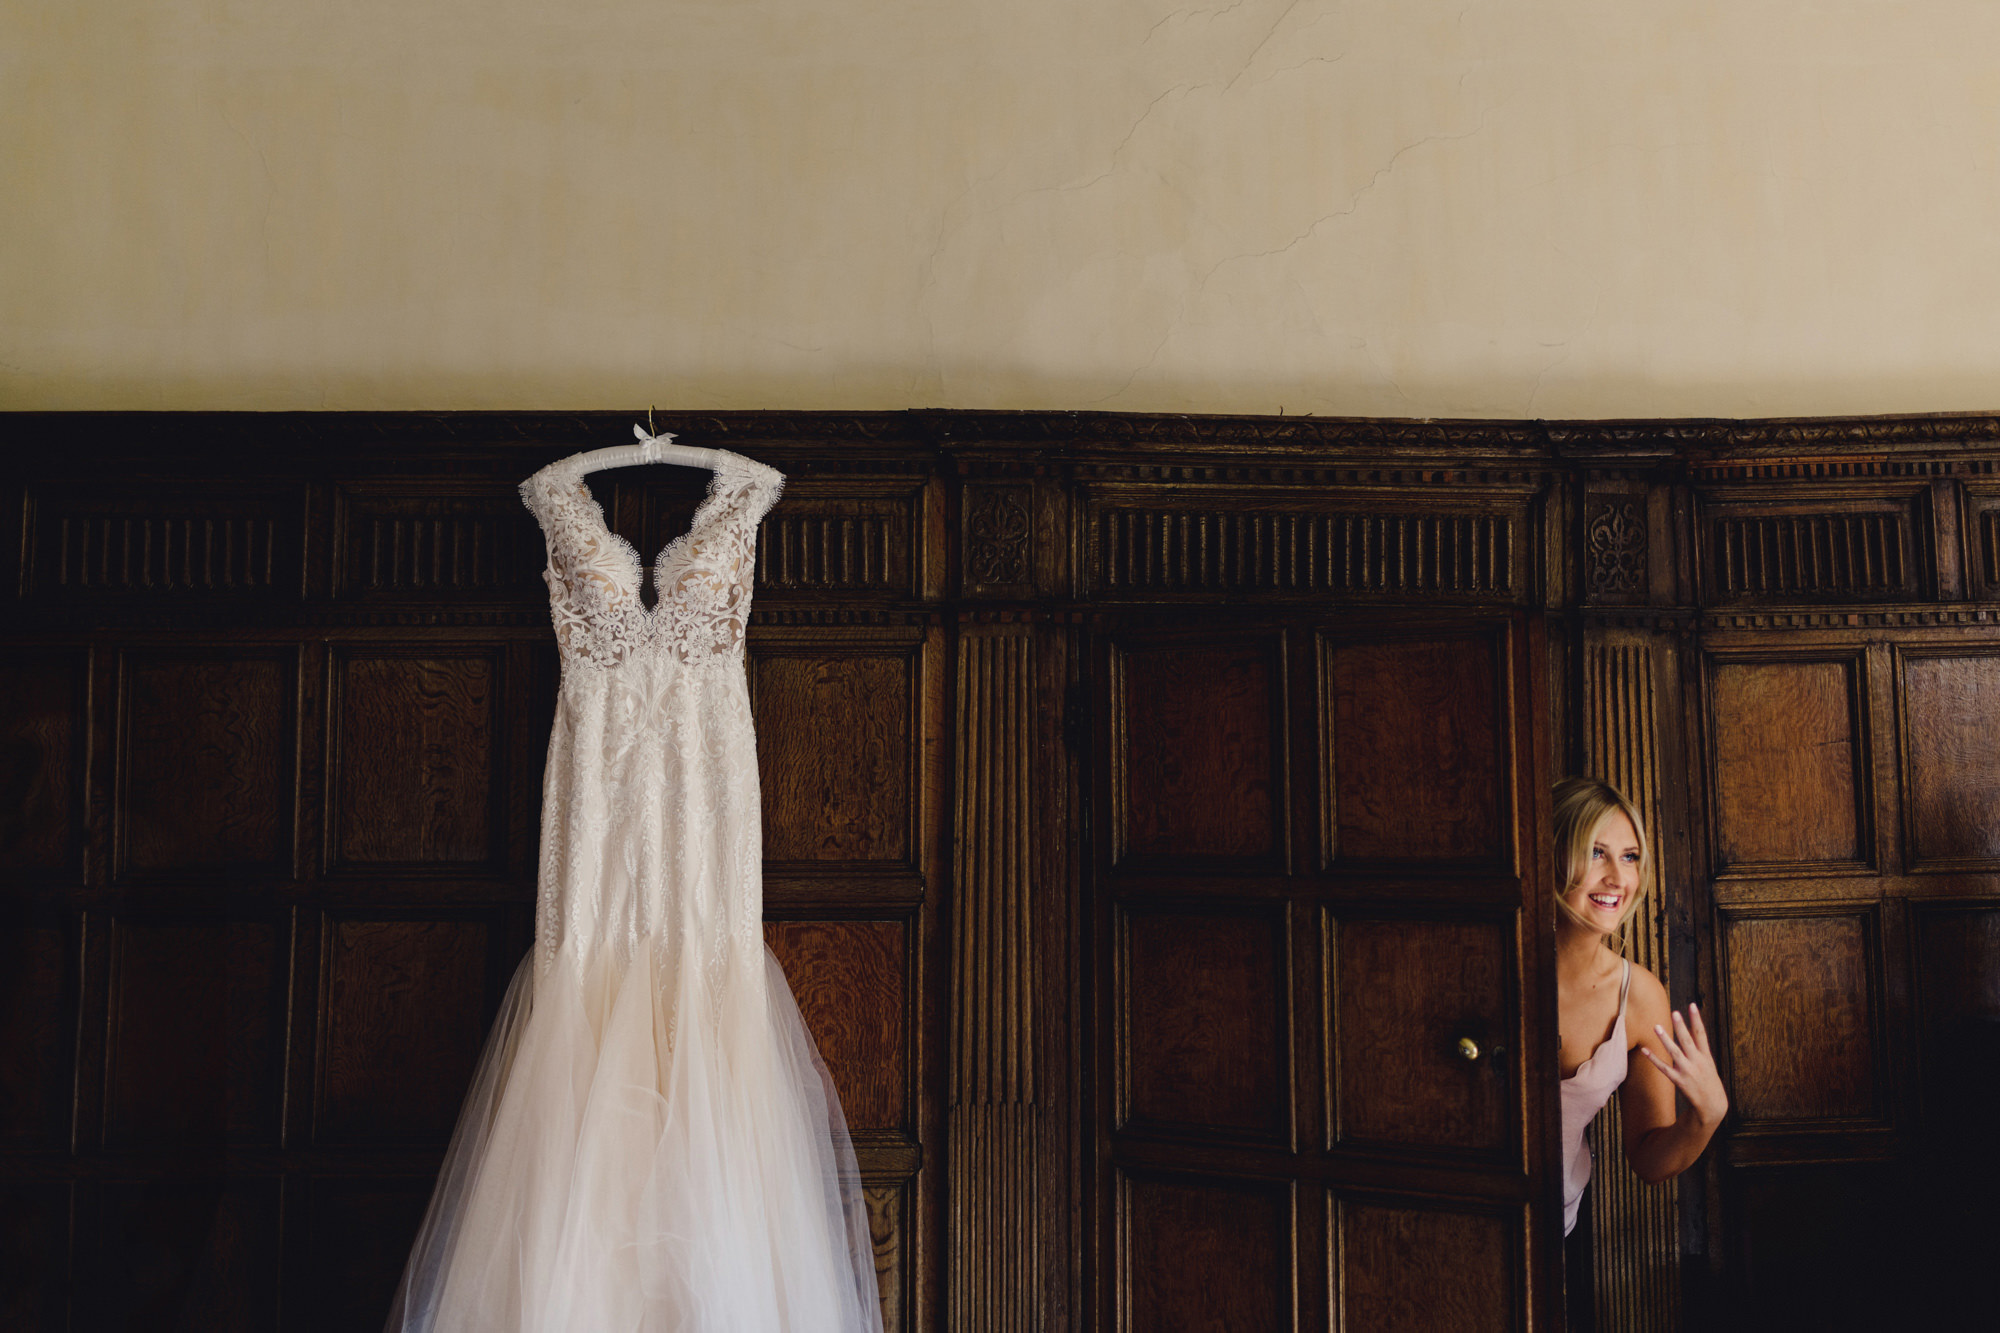 Bride getting ready at Dorford Hall, Cheshire, England - photo by Ash Davenport of Miki Studios